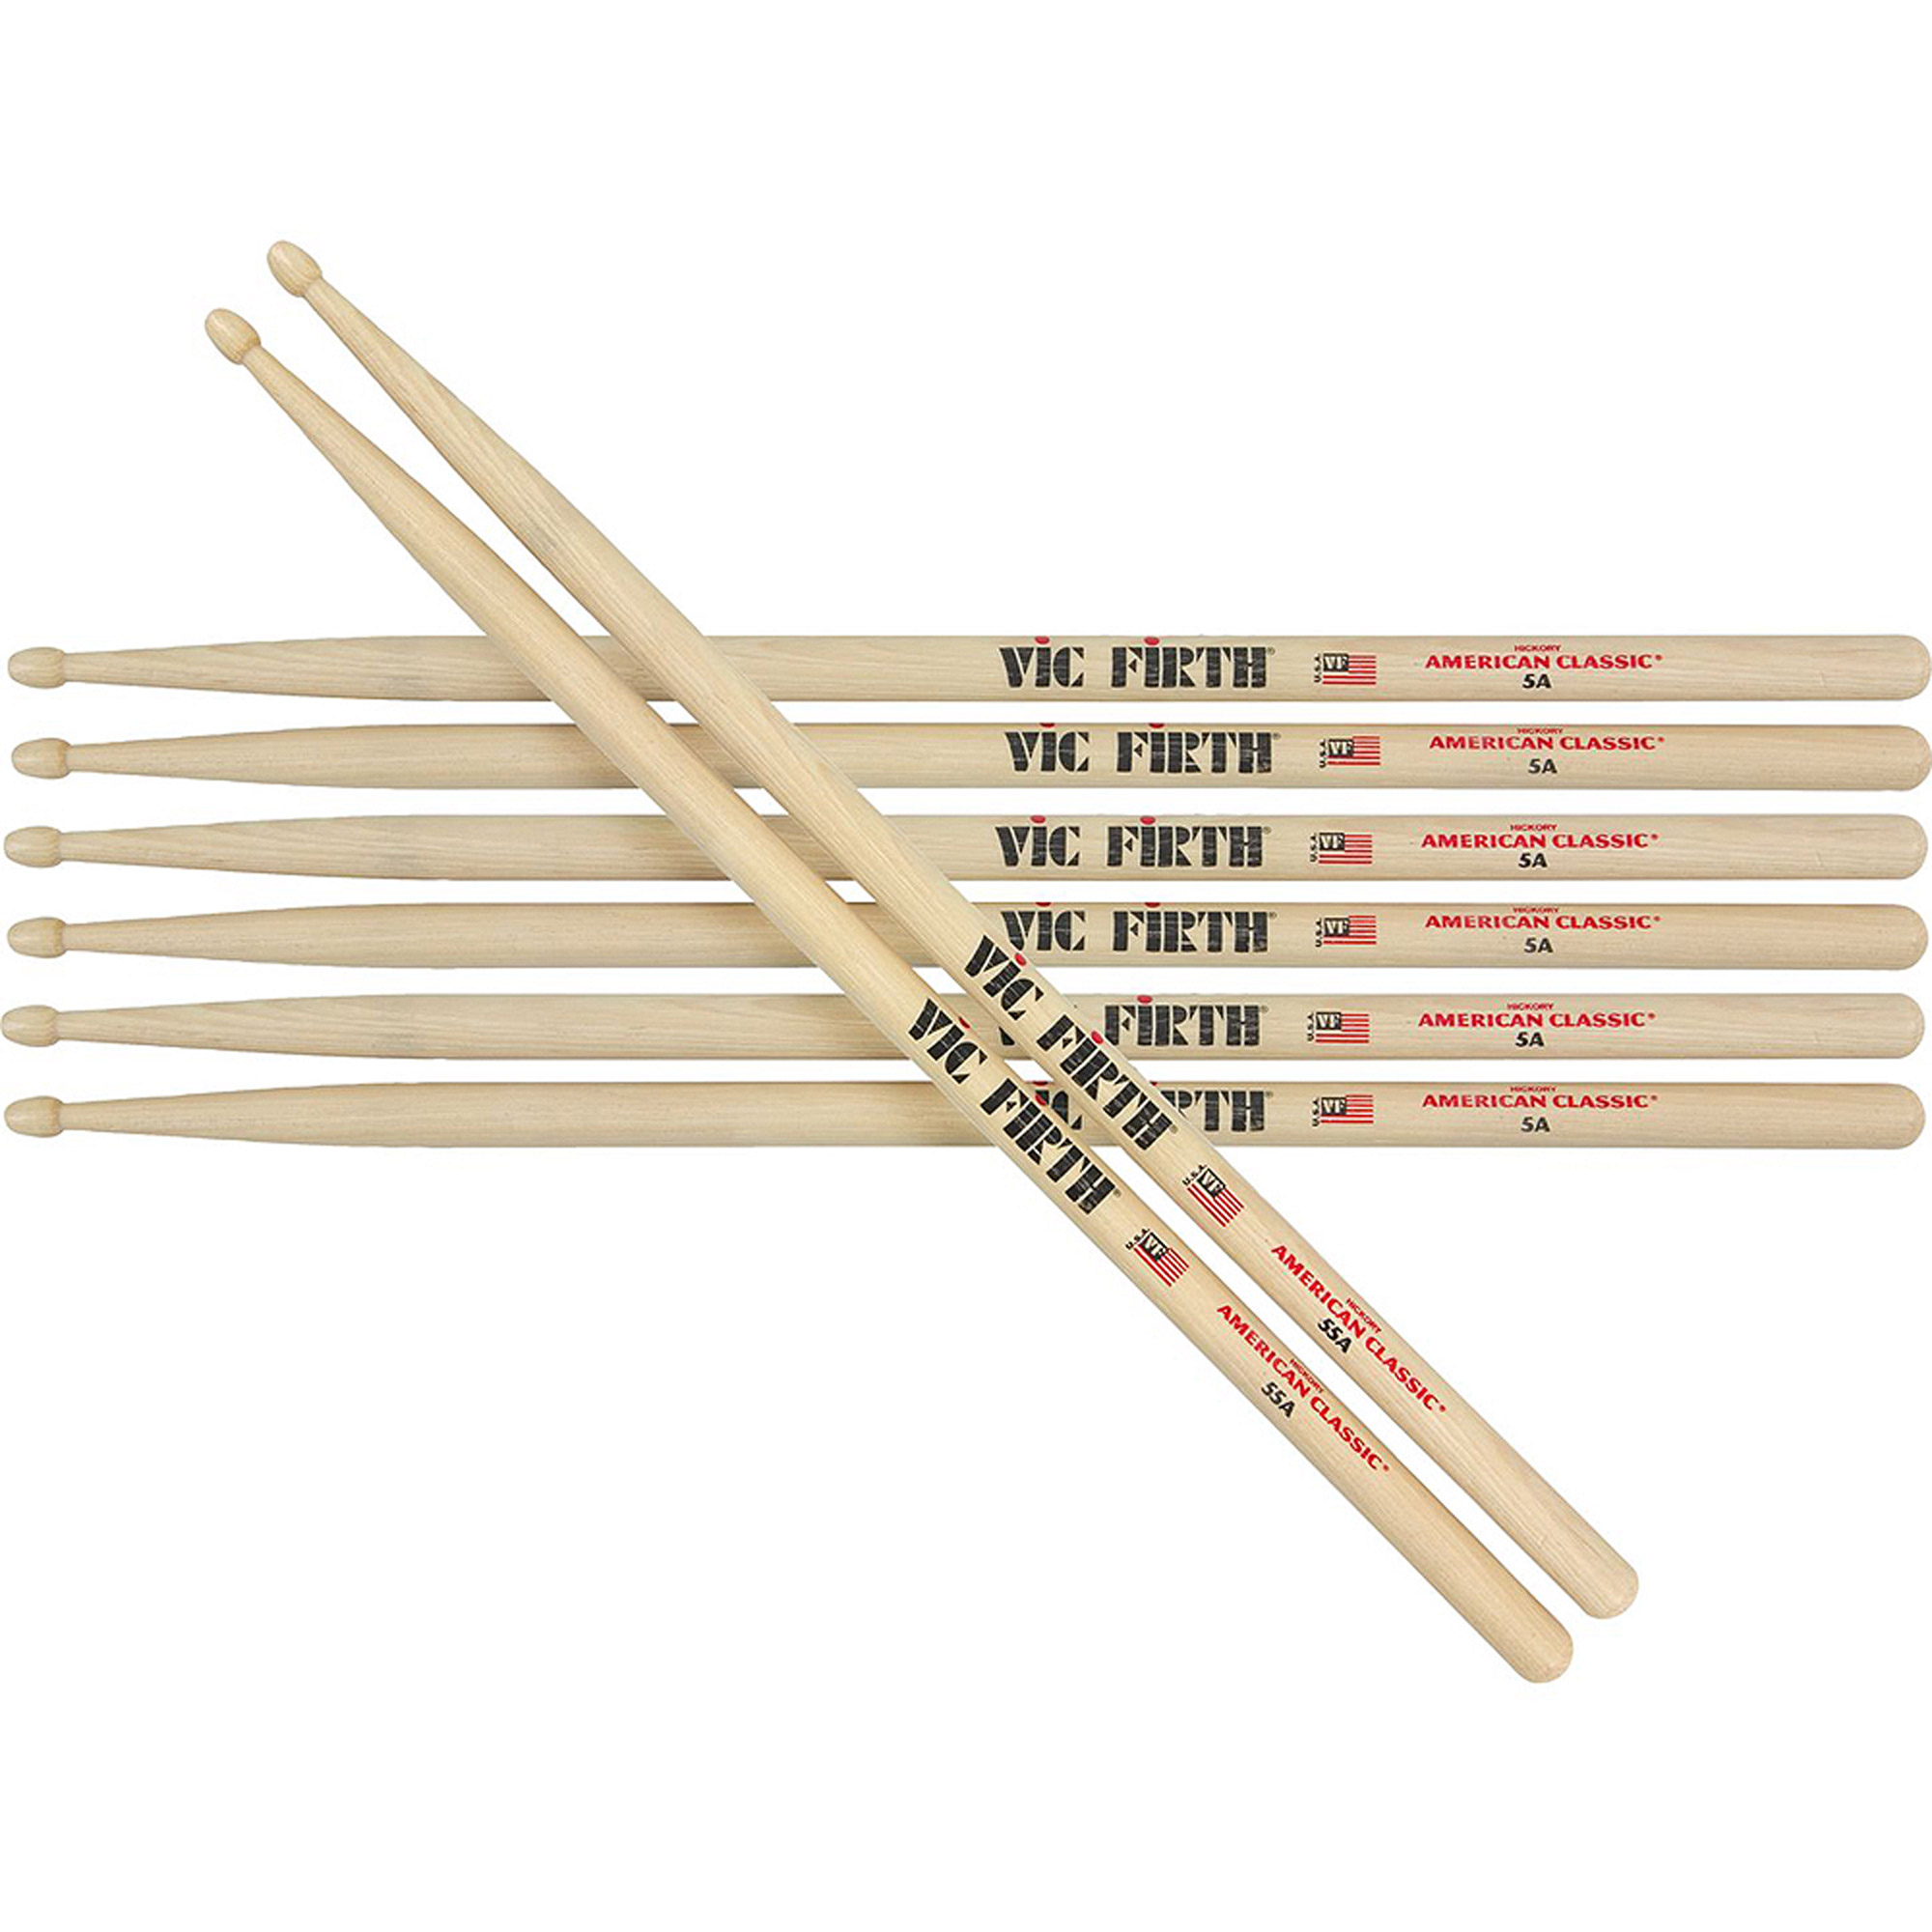 Vic Firth 5A American Classic Wood Tip Drumsticks - 4 For The Price of 3!